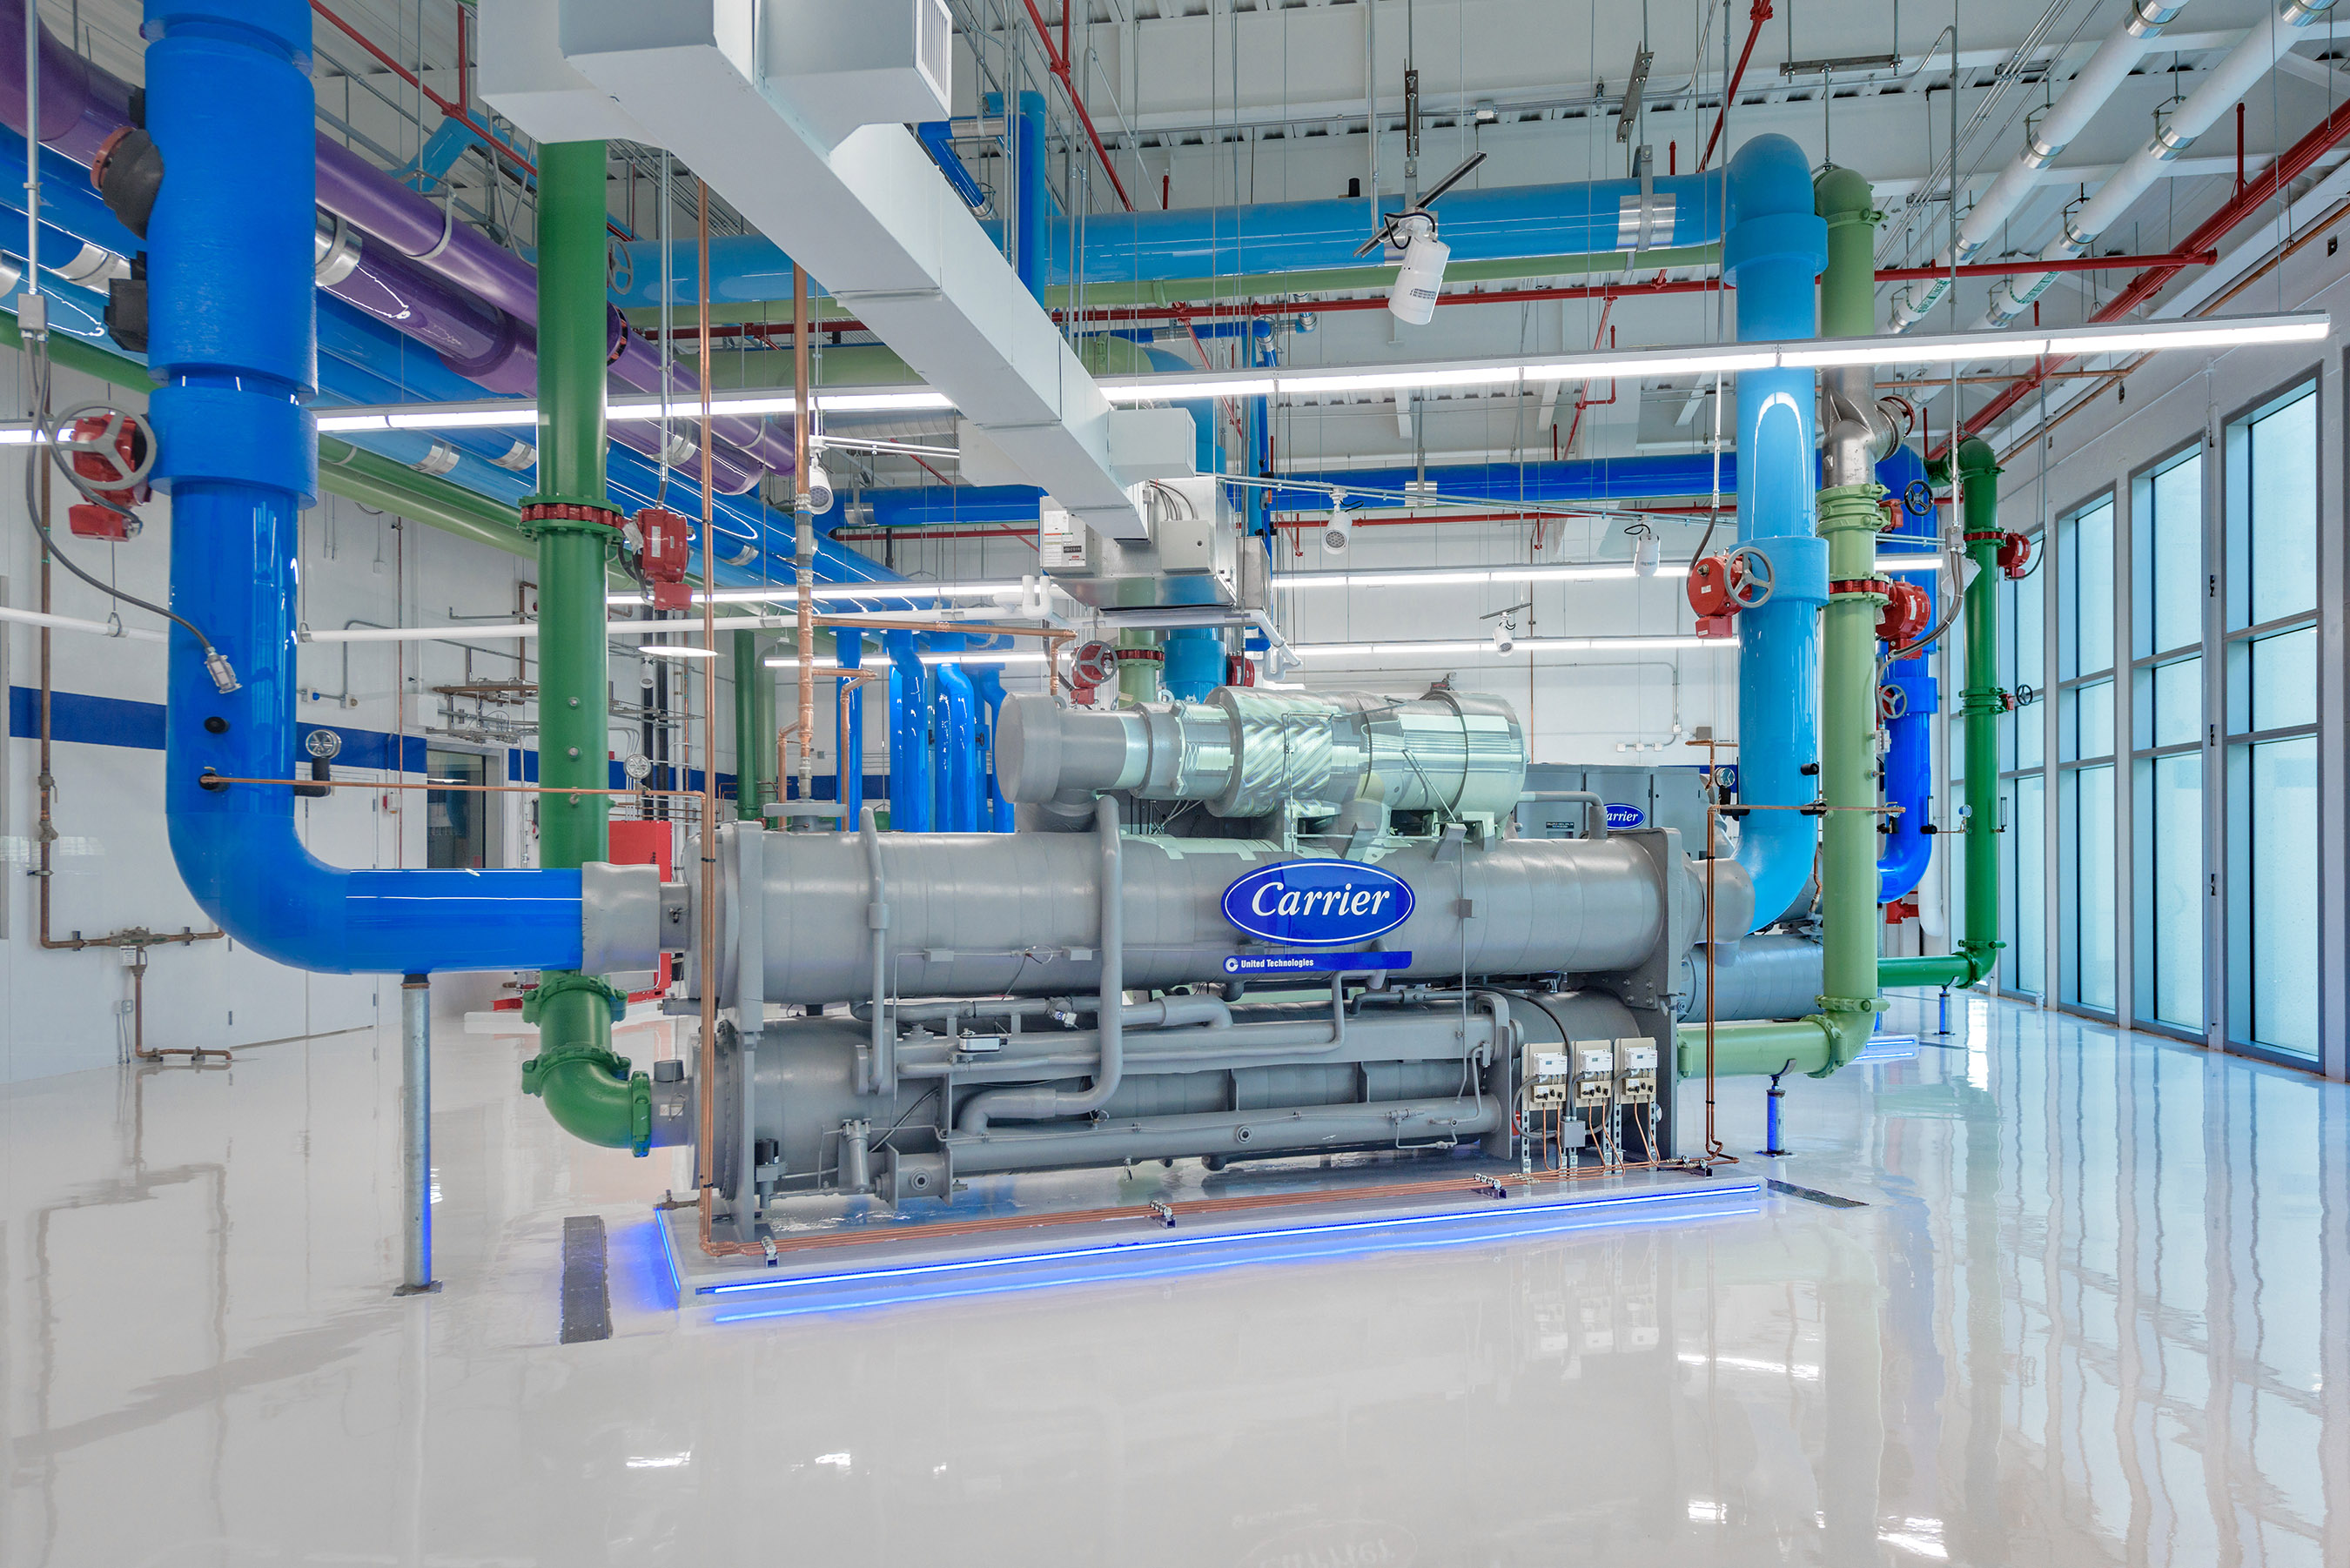 Two Carrier AquaEdge® 23XRV chillers, the world's leading efficiency screw chiller, paired with augmented reality to reveal their inner operations.